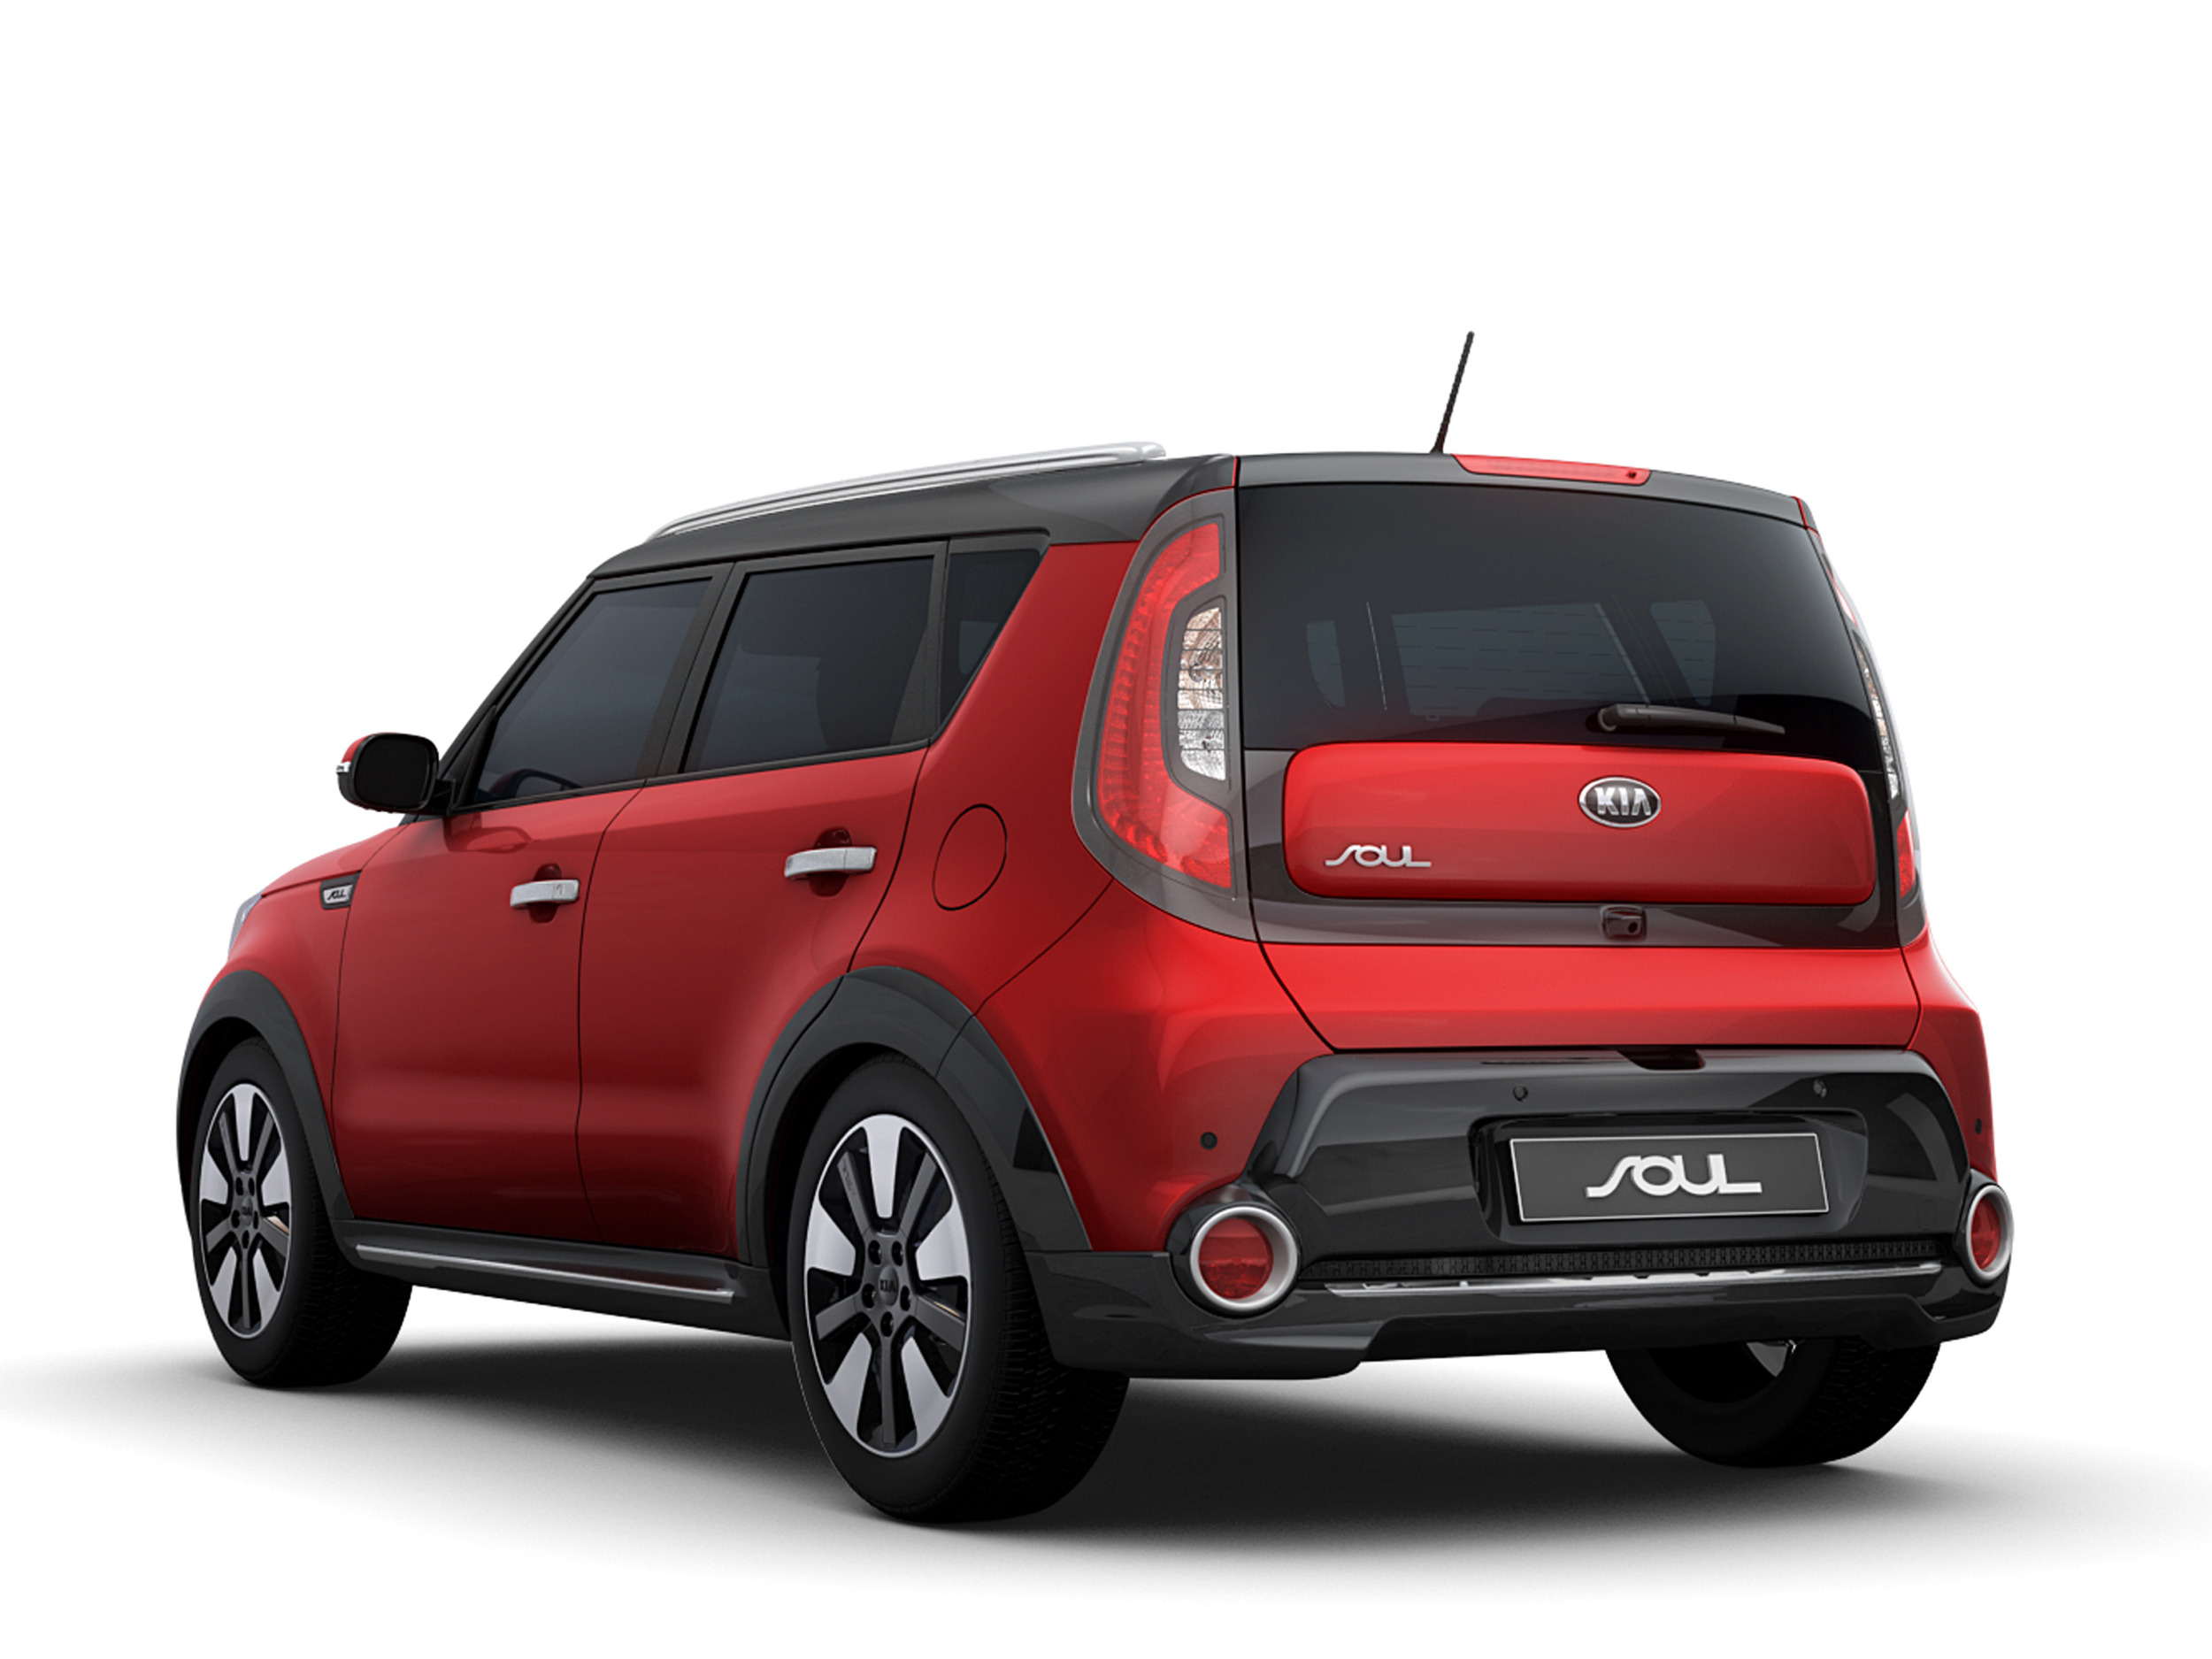 2014 kia soul euro suv styling pack photo gallery autoblog. Black Bedroom Furniture Sets. Home Design Ideas